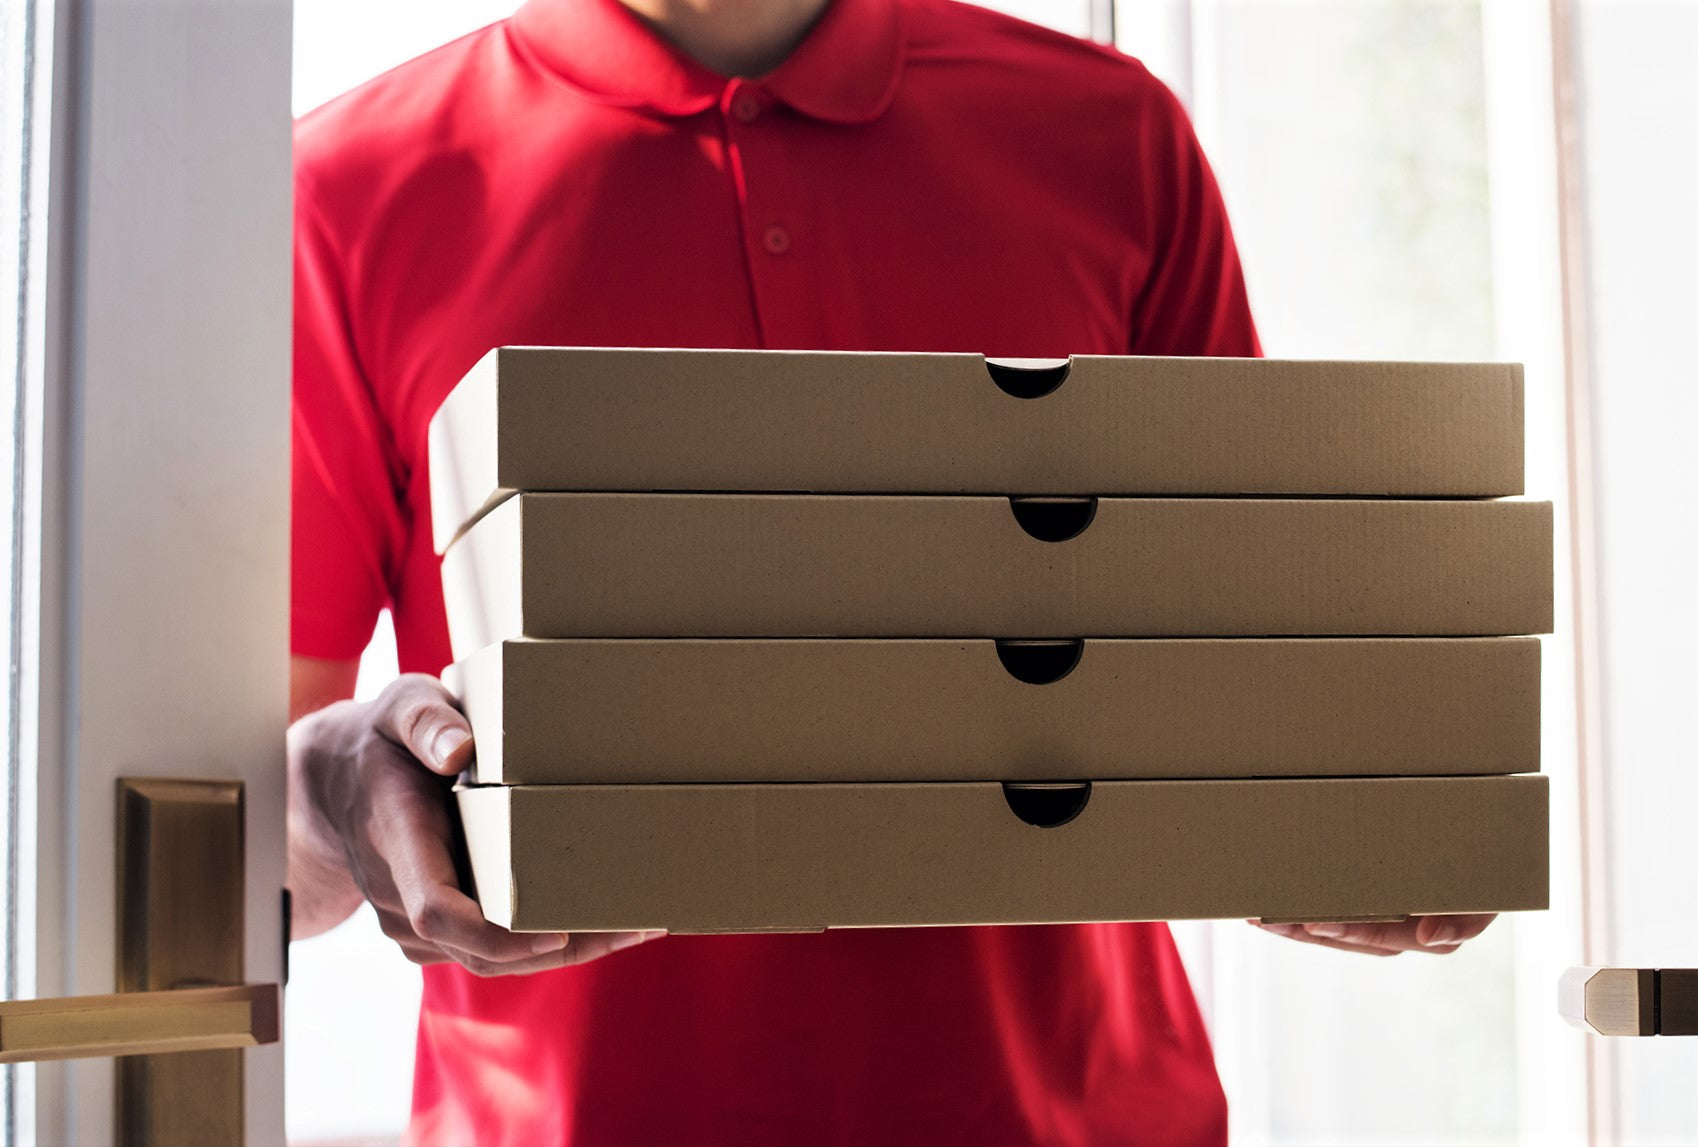 pizza delivery man in red shirt carrying stack of hot fresh pizzas